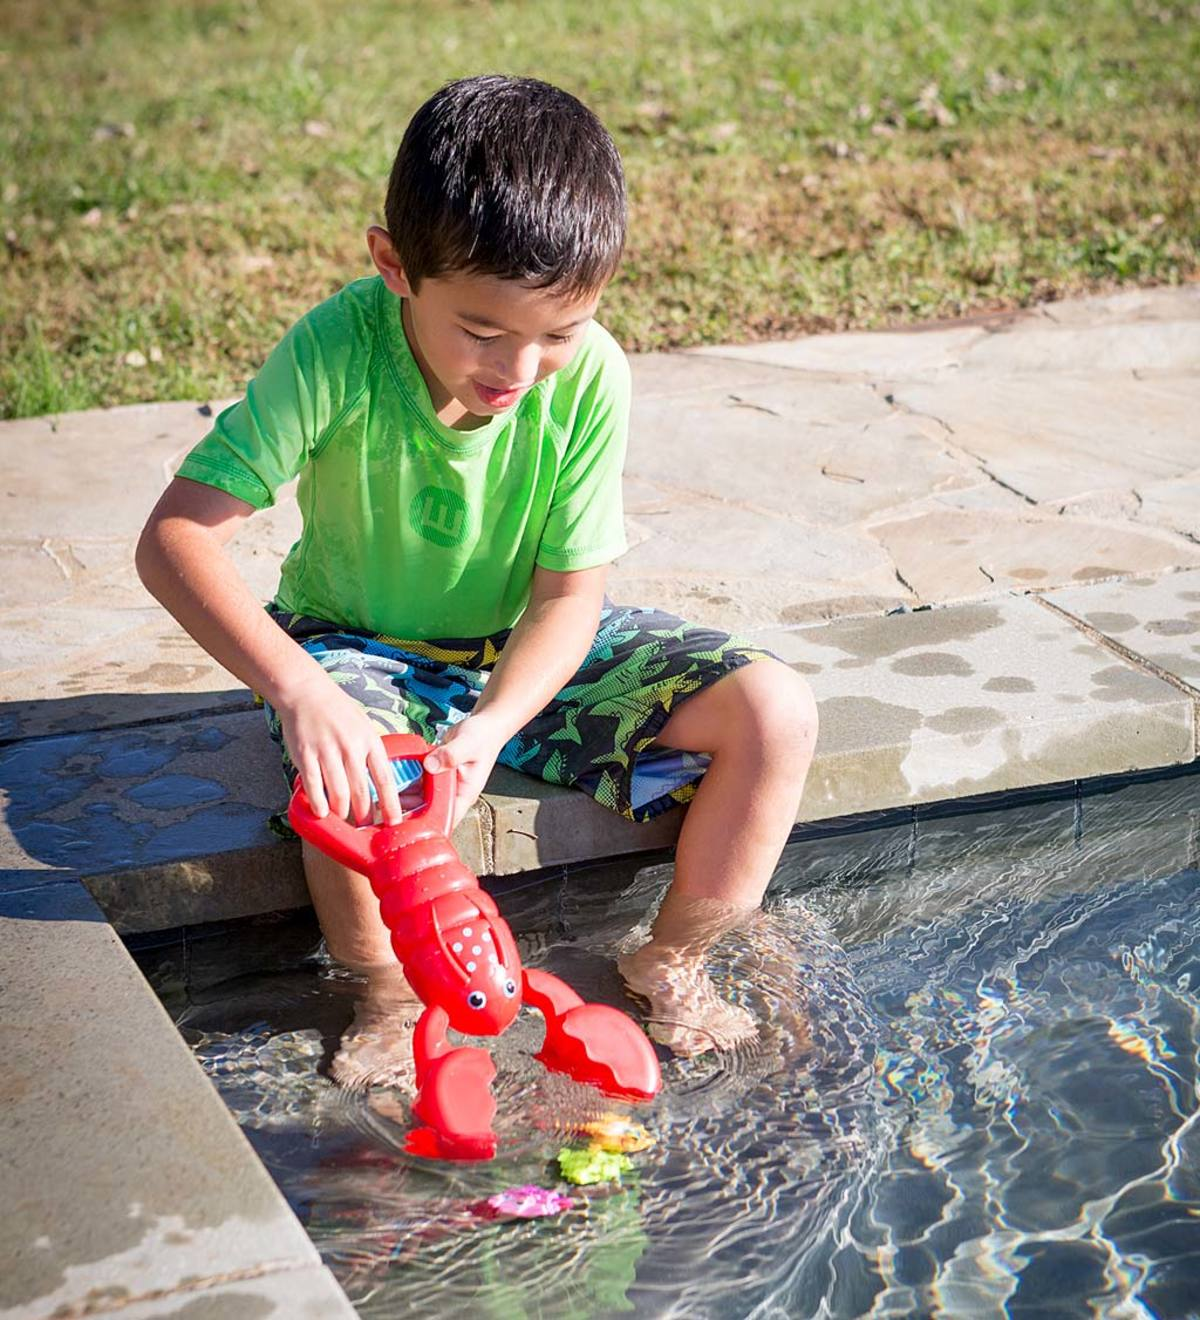 Lobster Claw Catcher Sand and Water Play Set